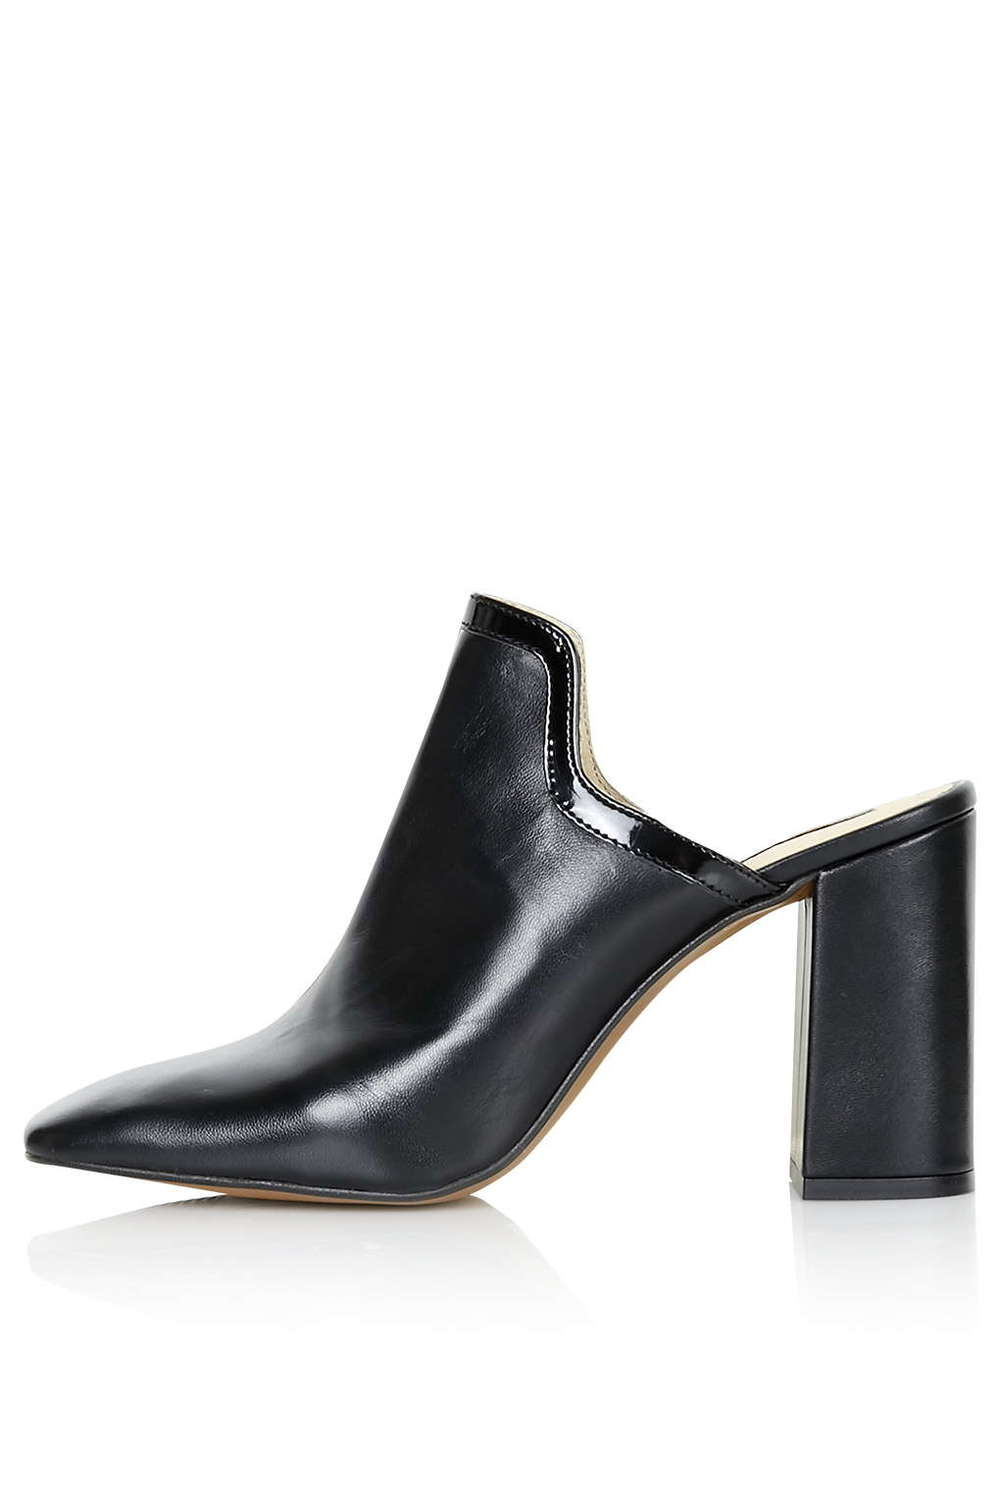 ROSE & IVY Journal topshop leather mules